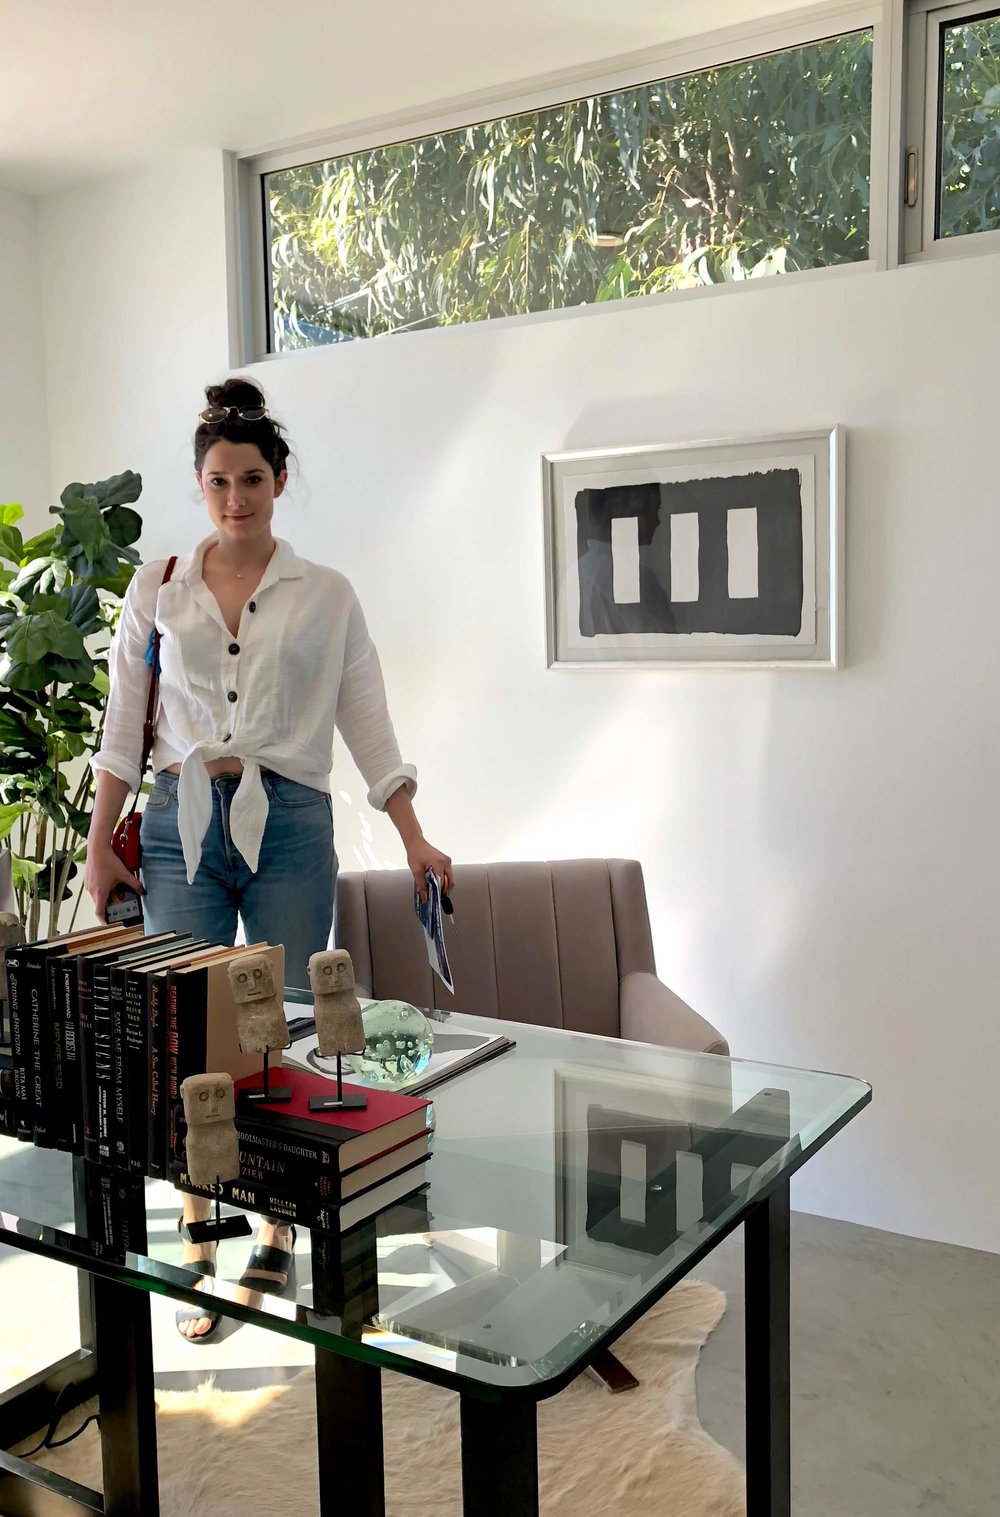 Loved touring these fab homes with my daughter | Malibu Home Tour, Dwell on Design #contemporaryarchitecture